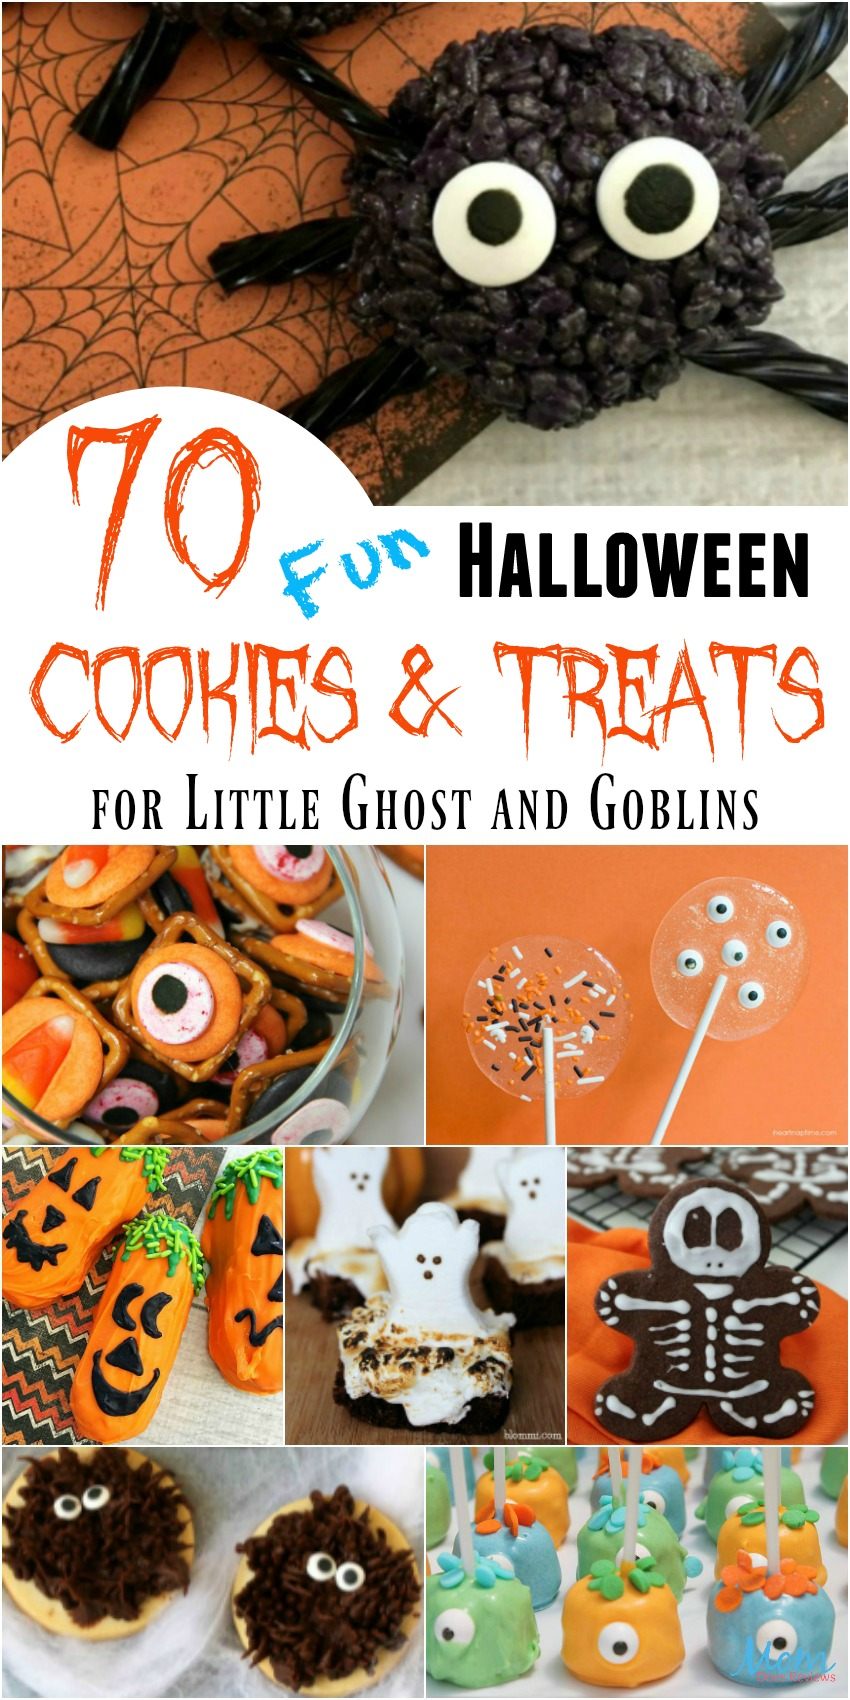 70 Fun Halloween Cookies & Treats for Little Ghost and Goblins